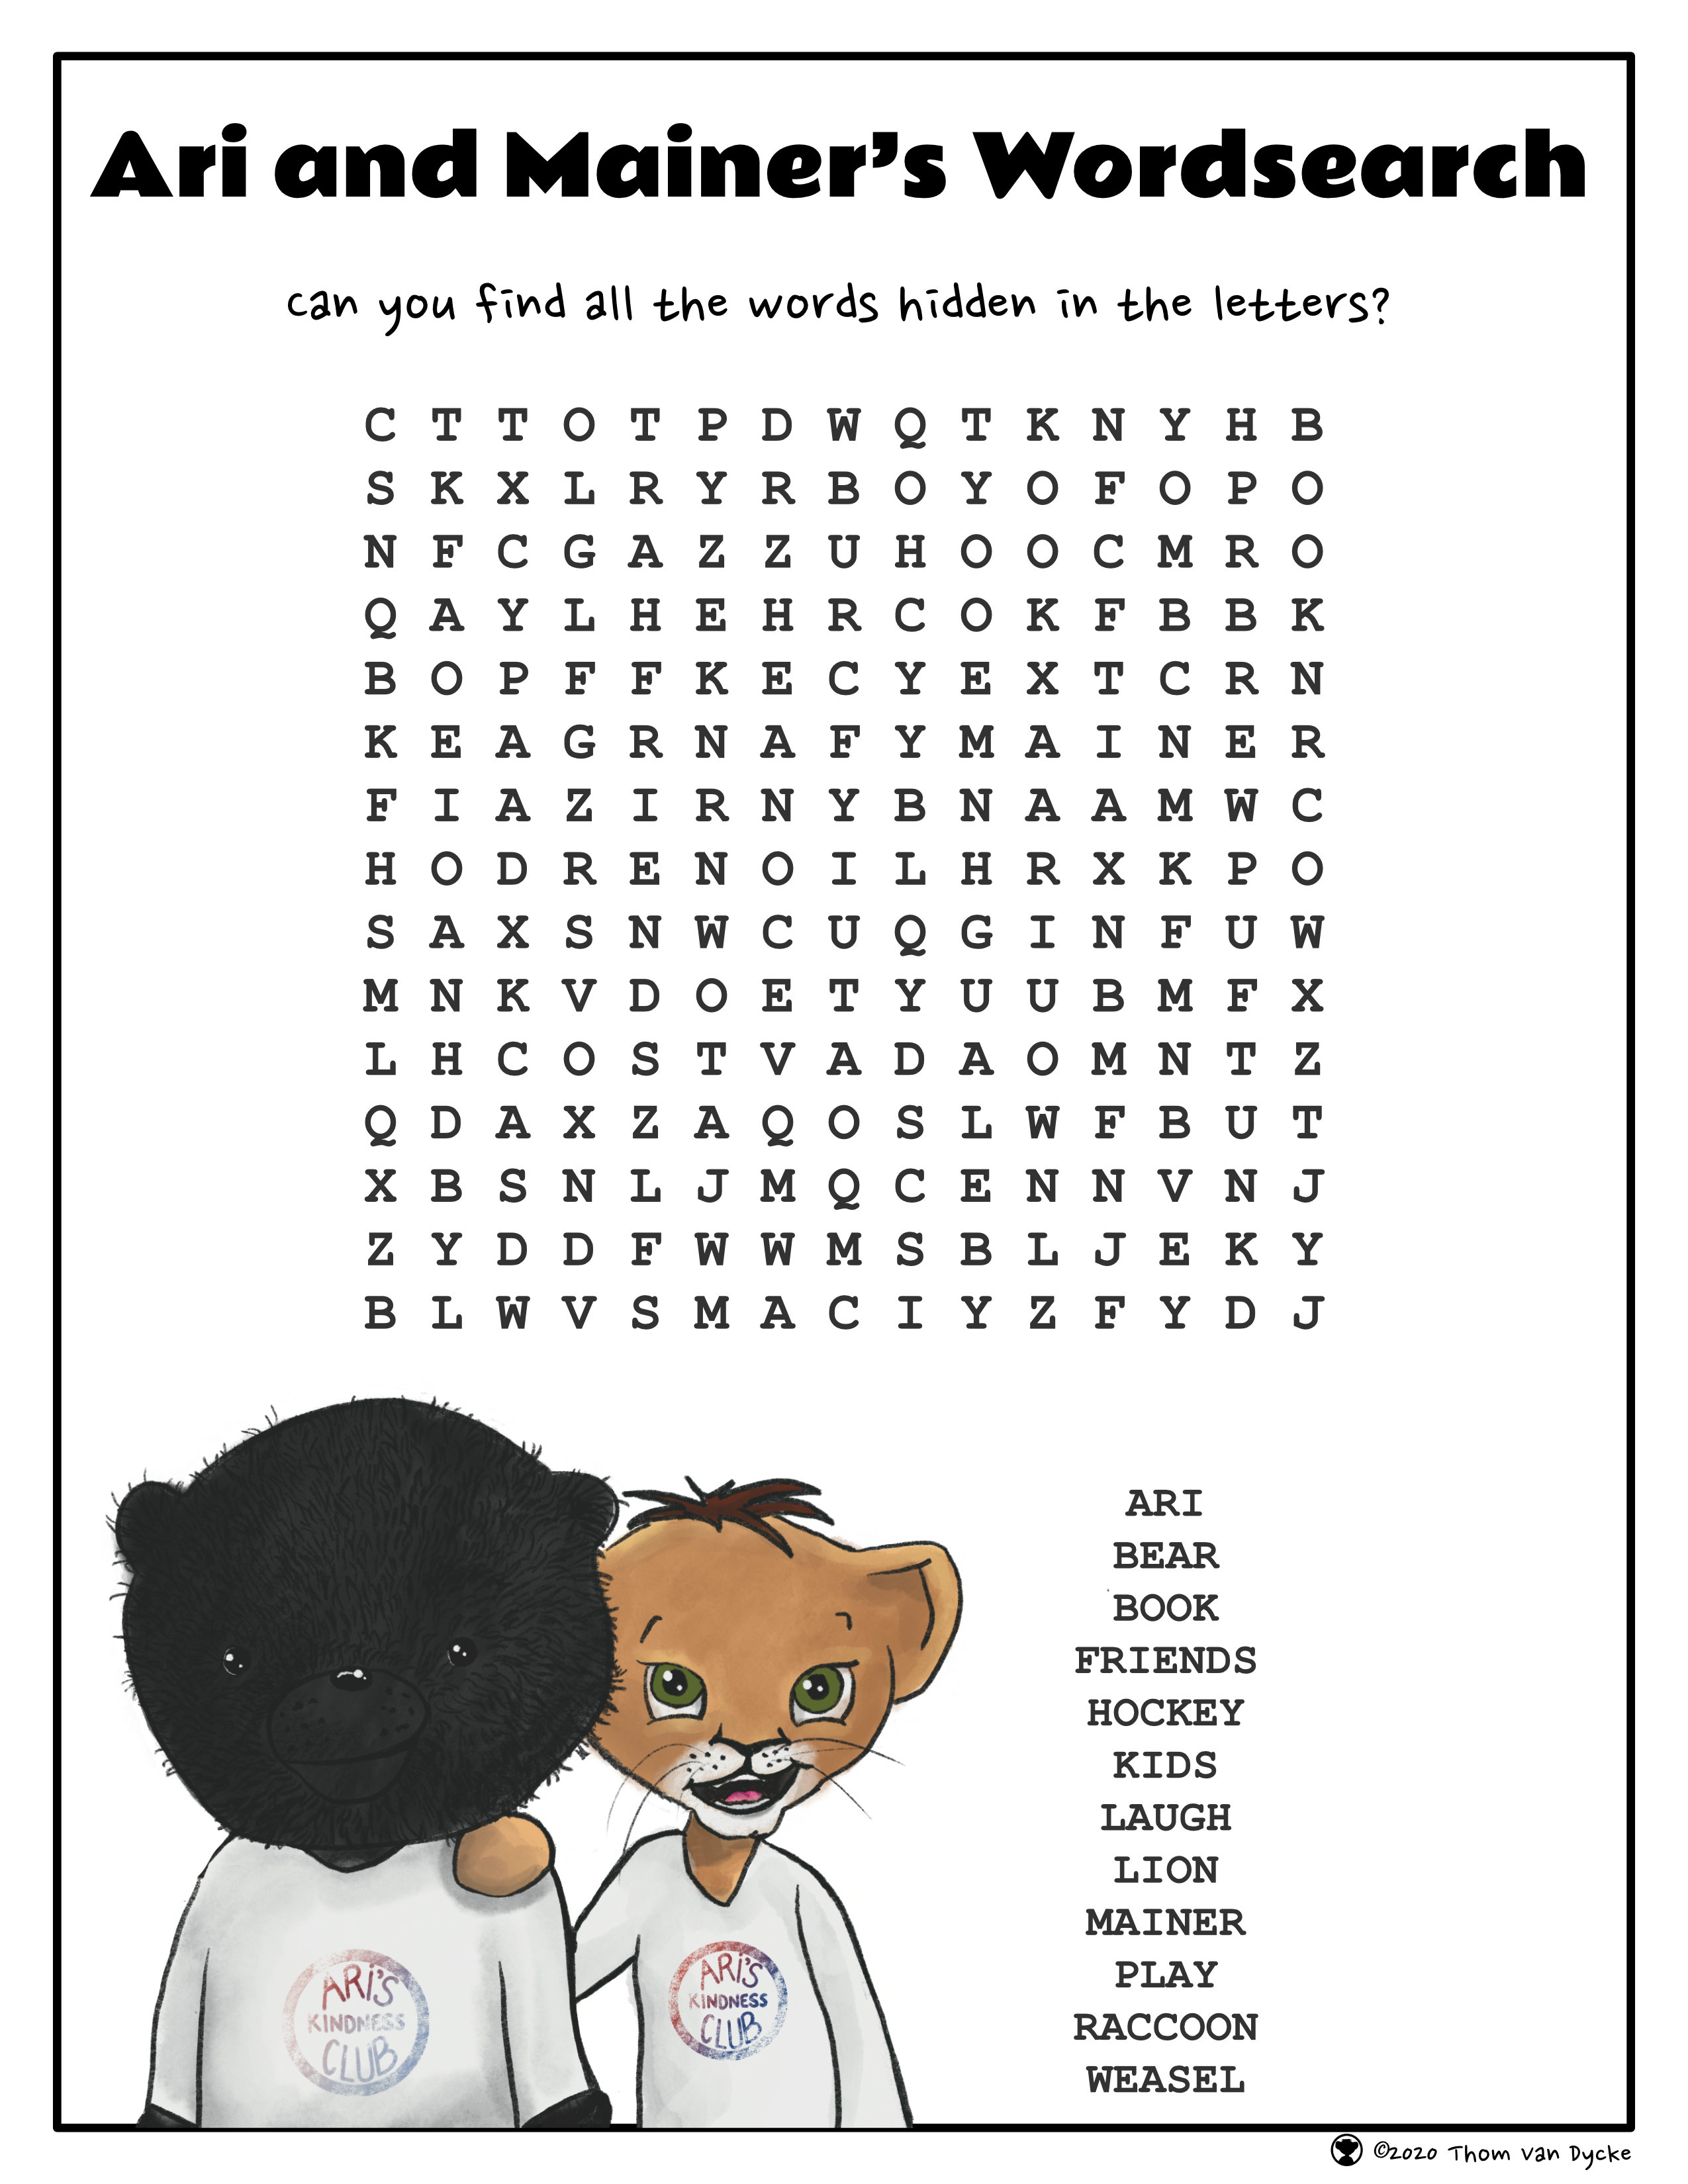 Air and Mainer's Word Search